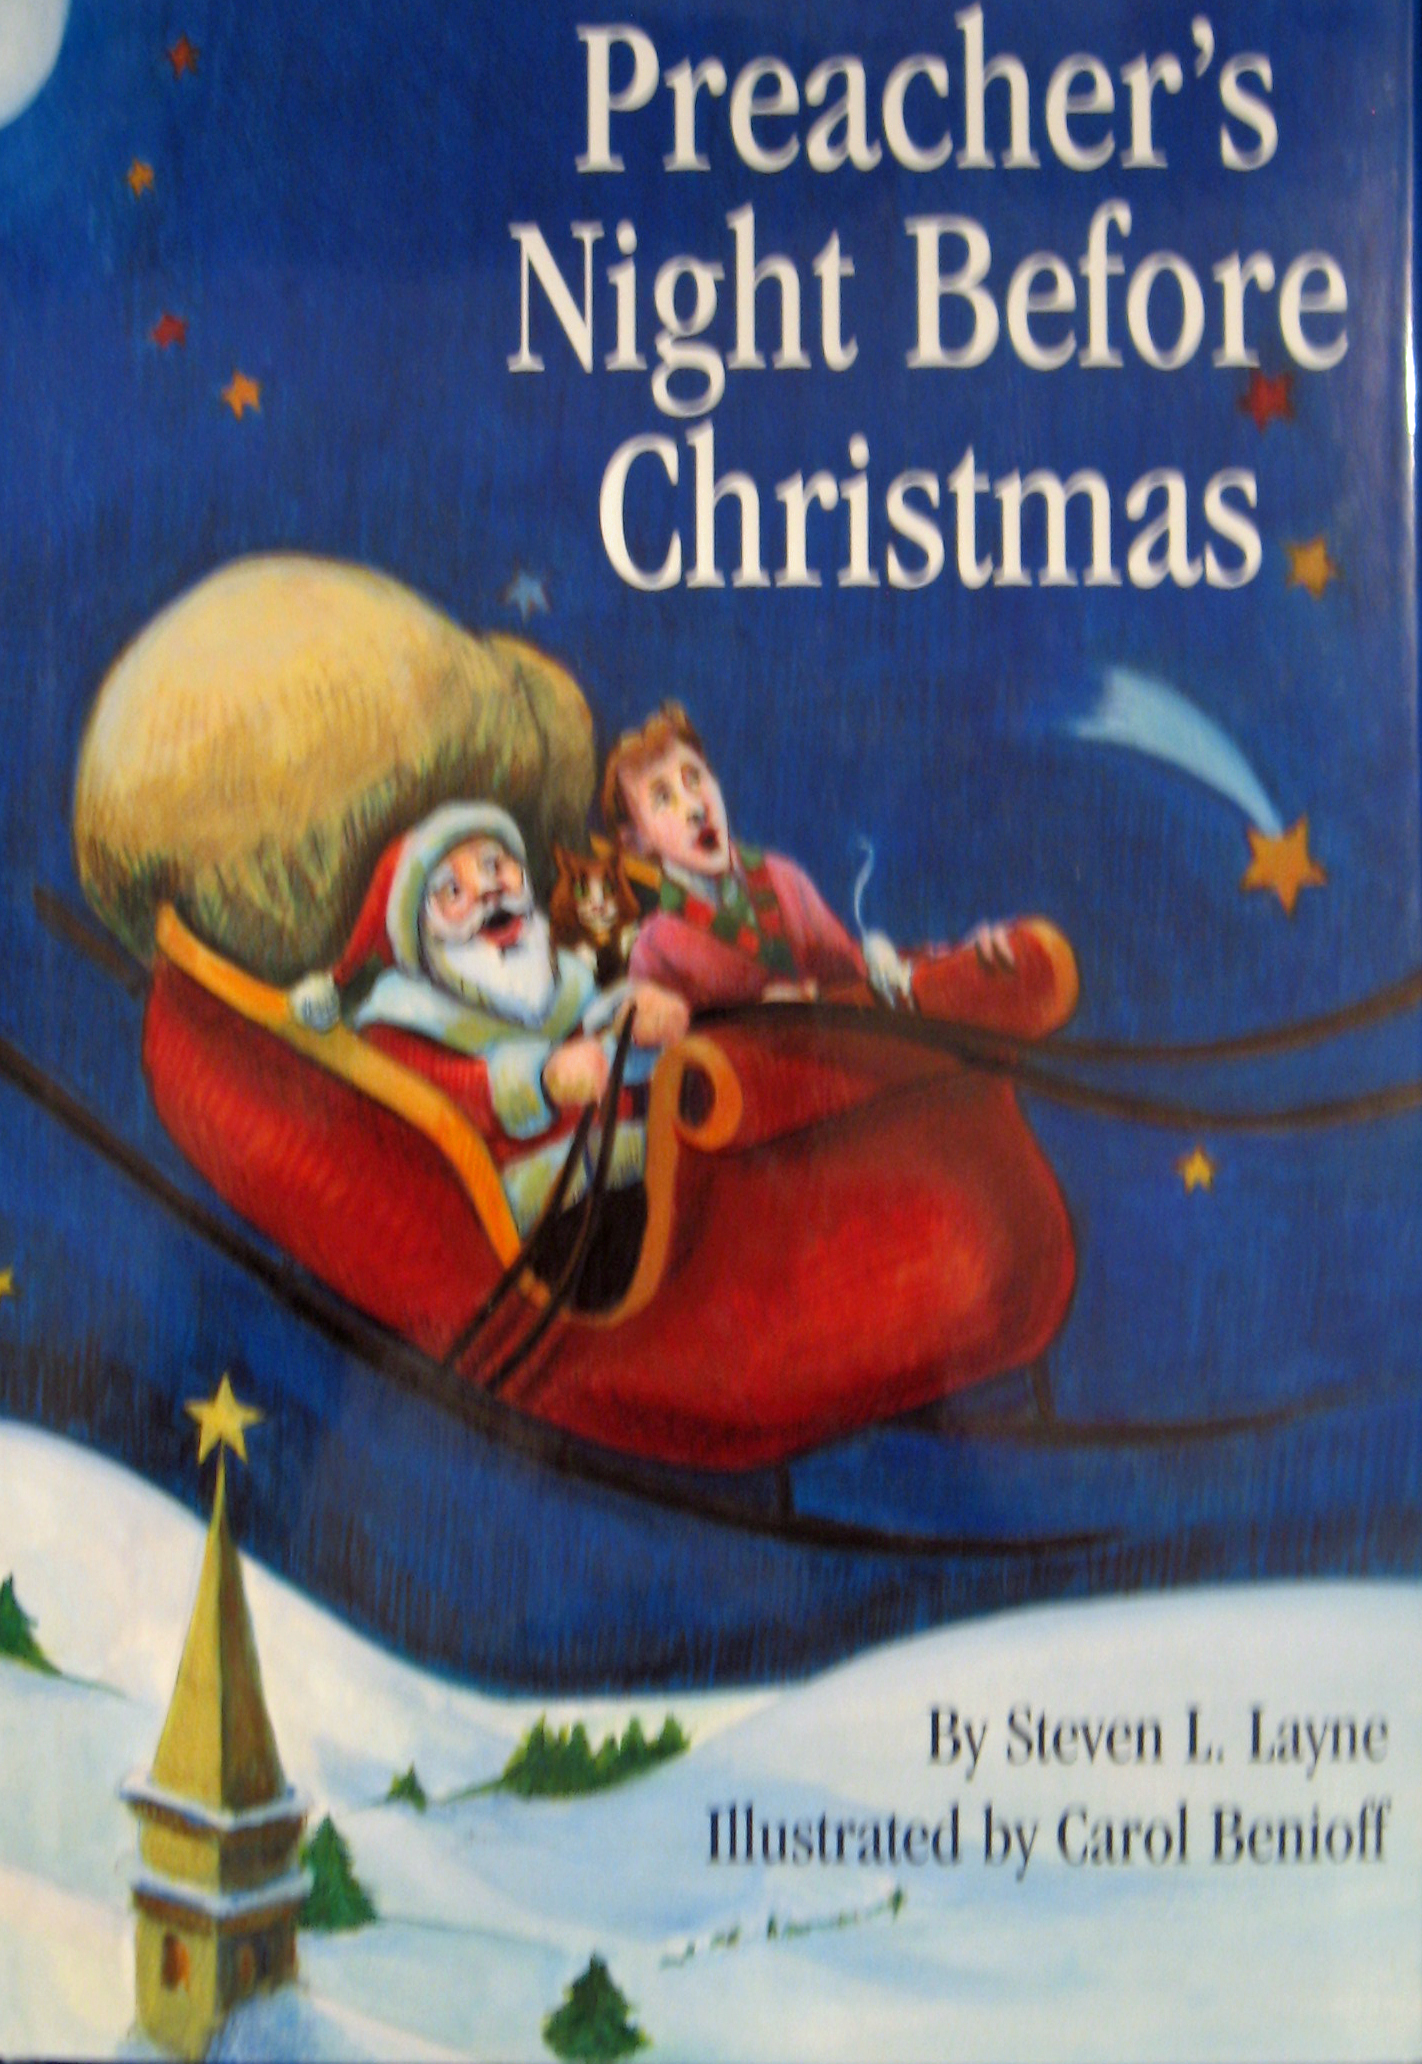 Preacher's Night Before Christmas by Steven L. Layne 108-9781589803213